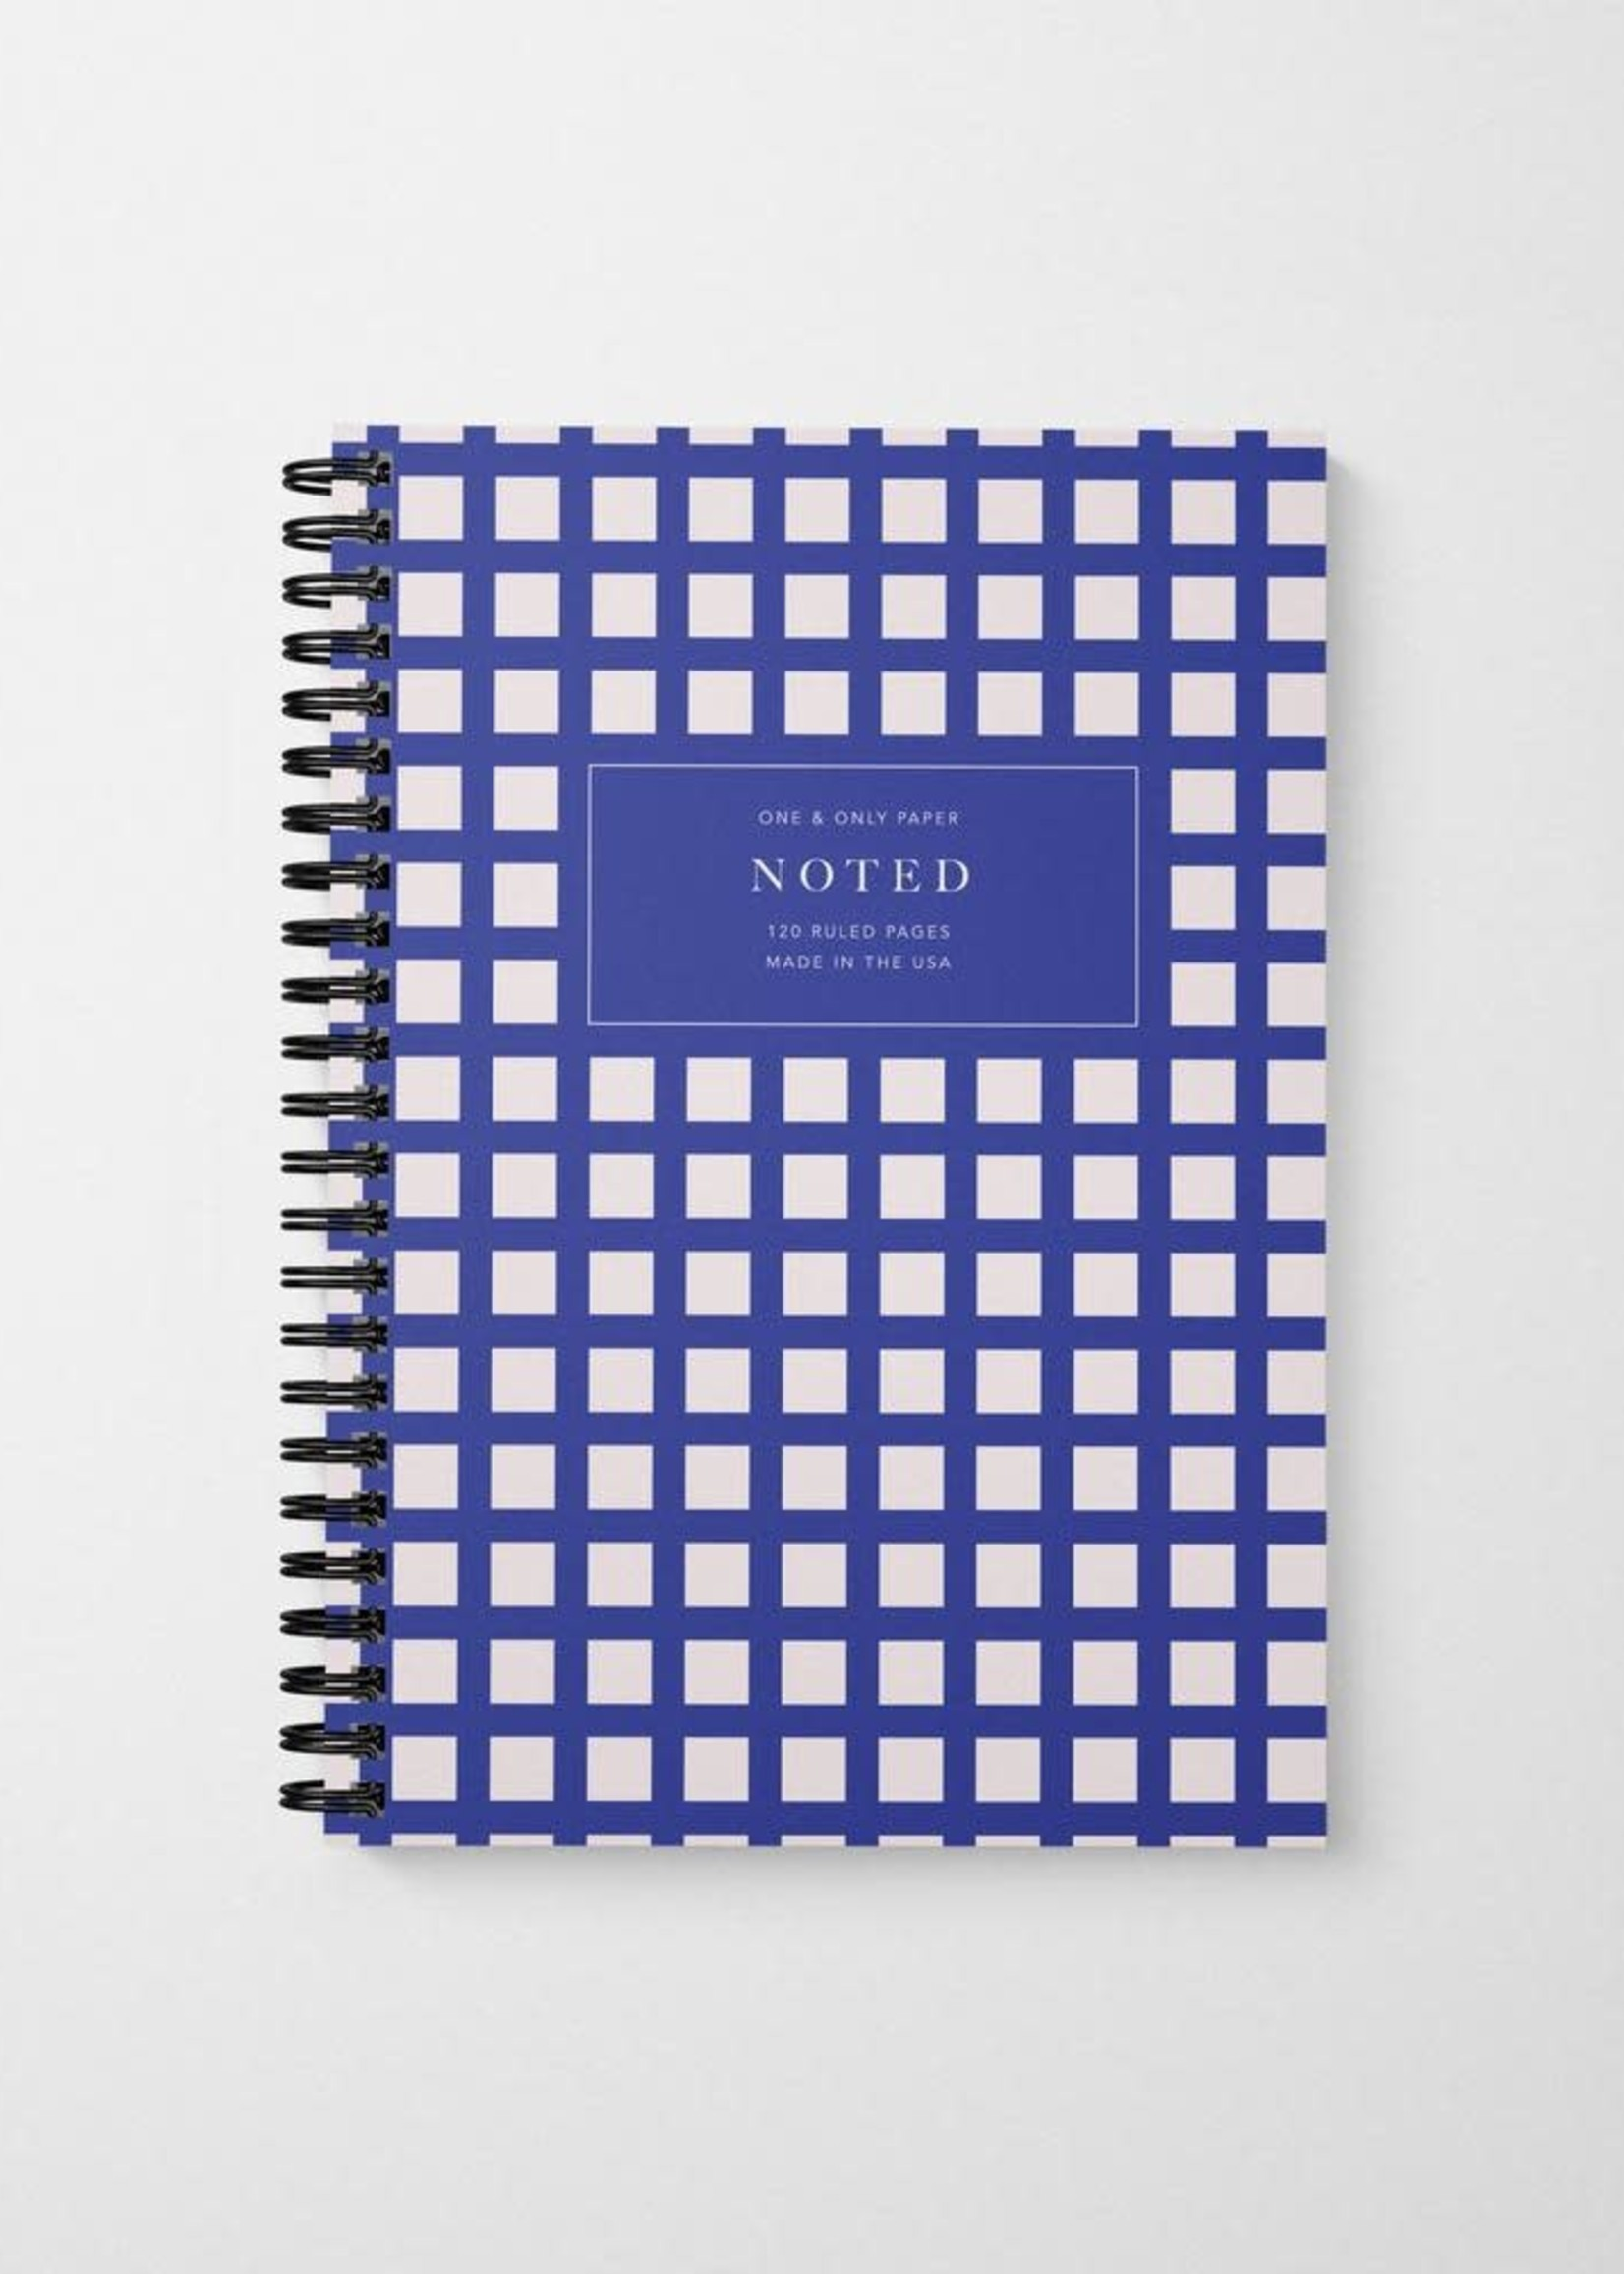 One & Only Paper Noted Checked Spiral Bound Notebook